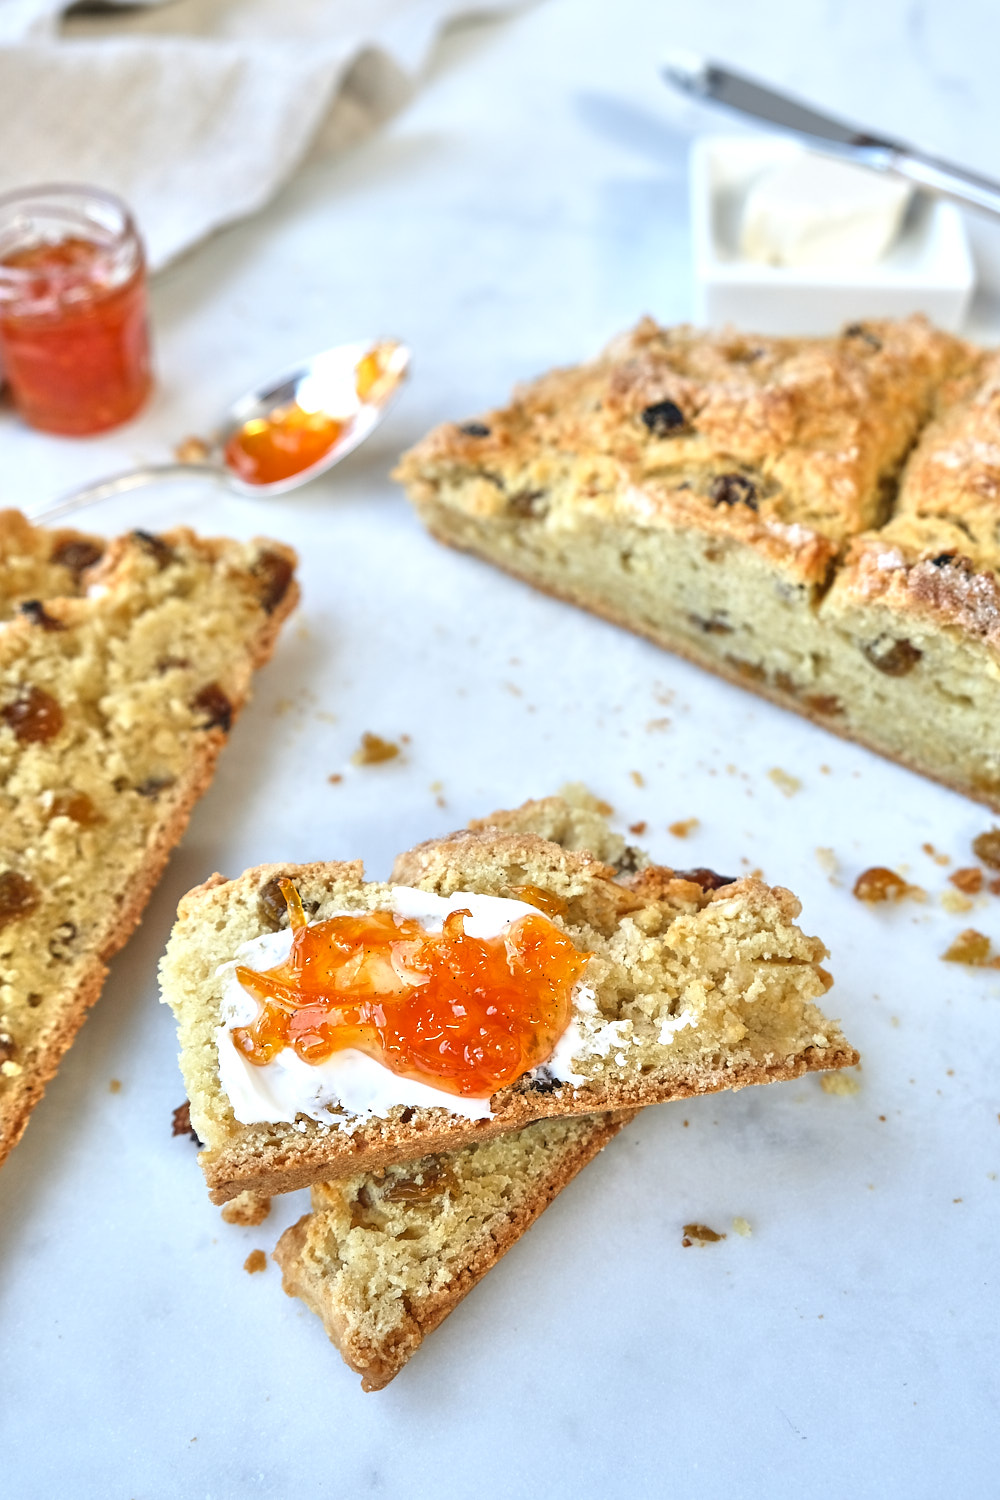 A loaf of irish soda bread cut into slices with orange marmalade.